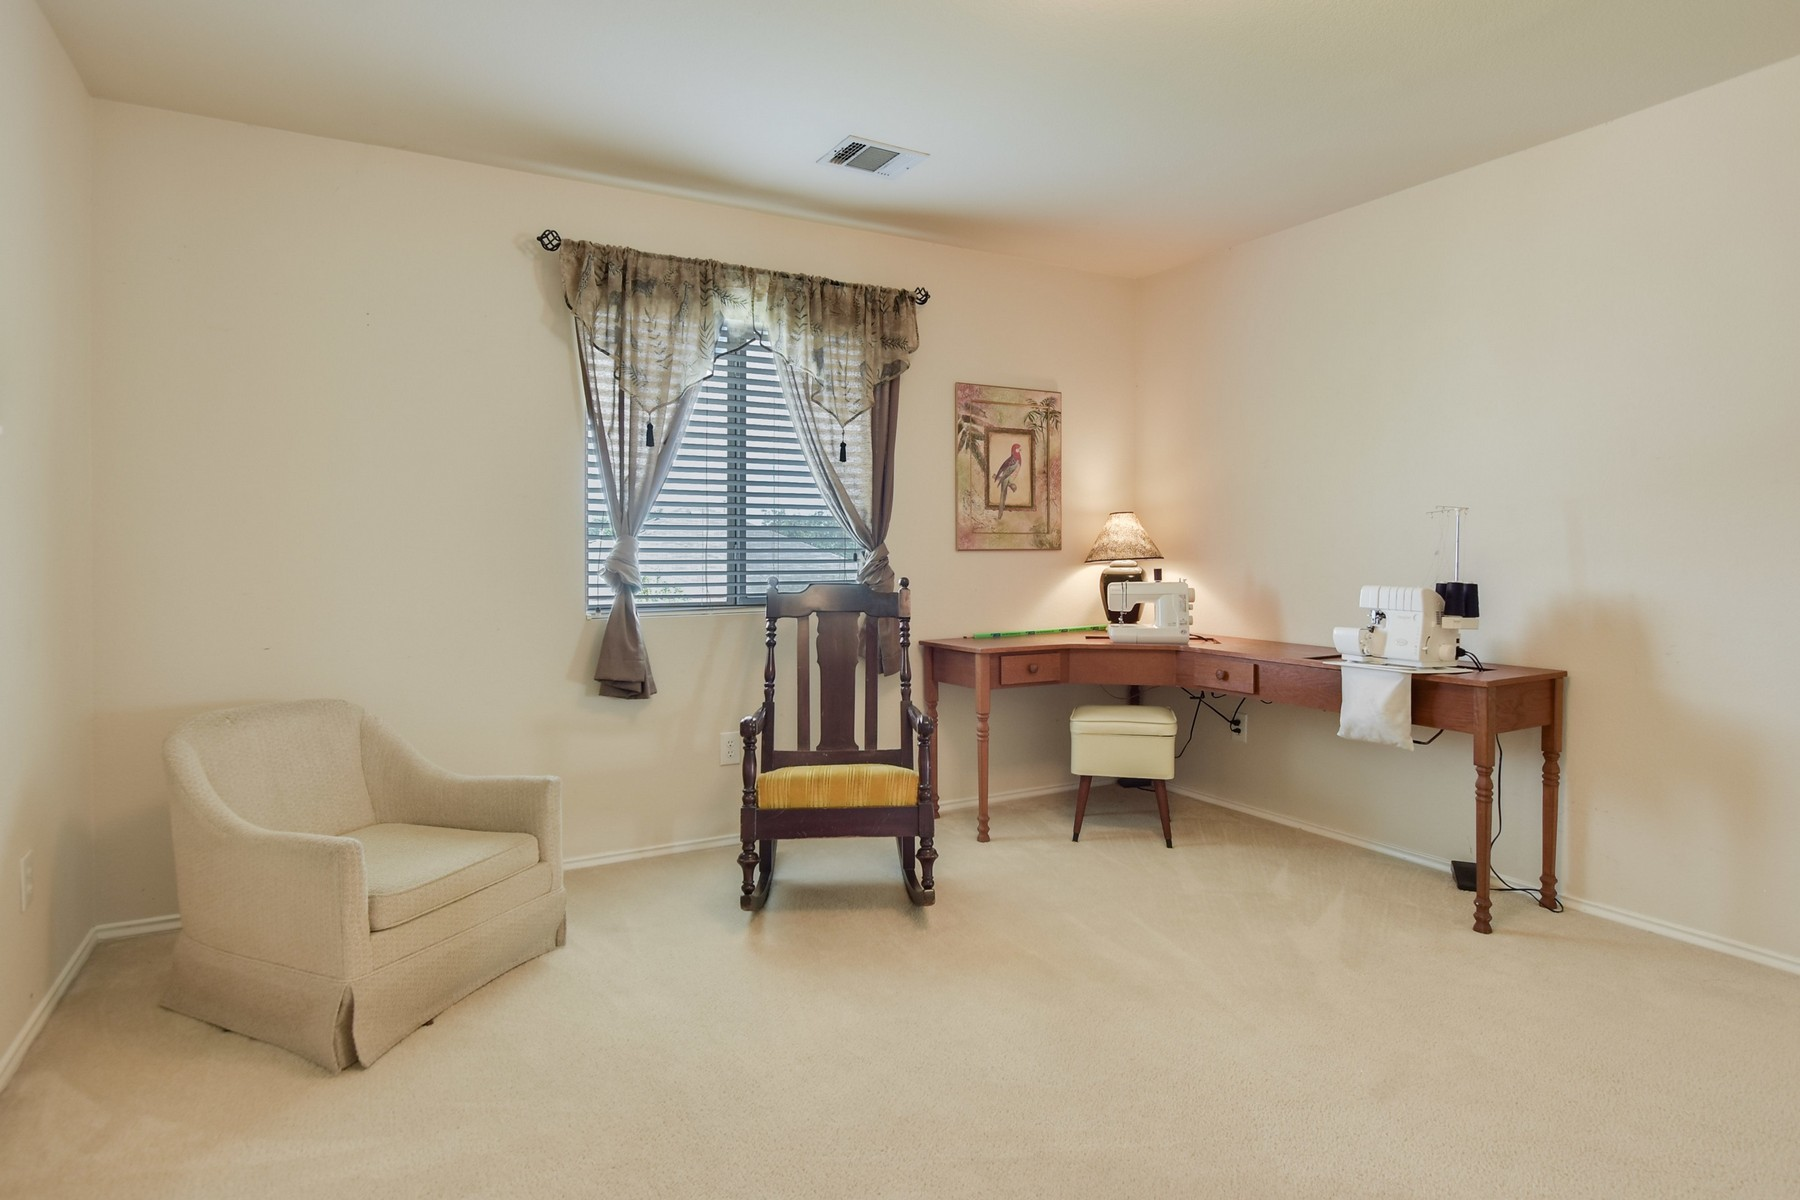 Additional photo for property listing at Meticulously Cared for Family Home in Kyle 100 Christopher Cv Kyle, Texas 78640 Estados Unidos